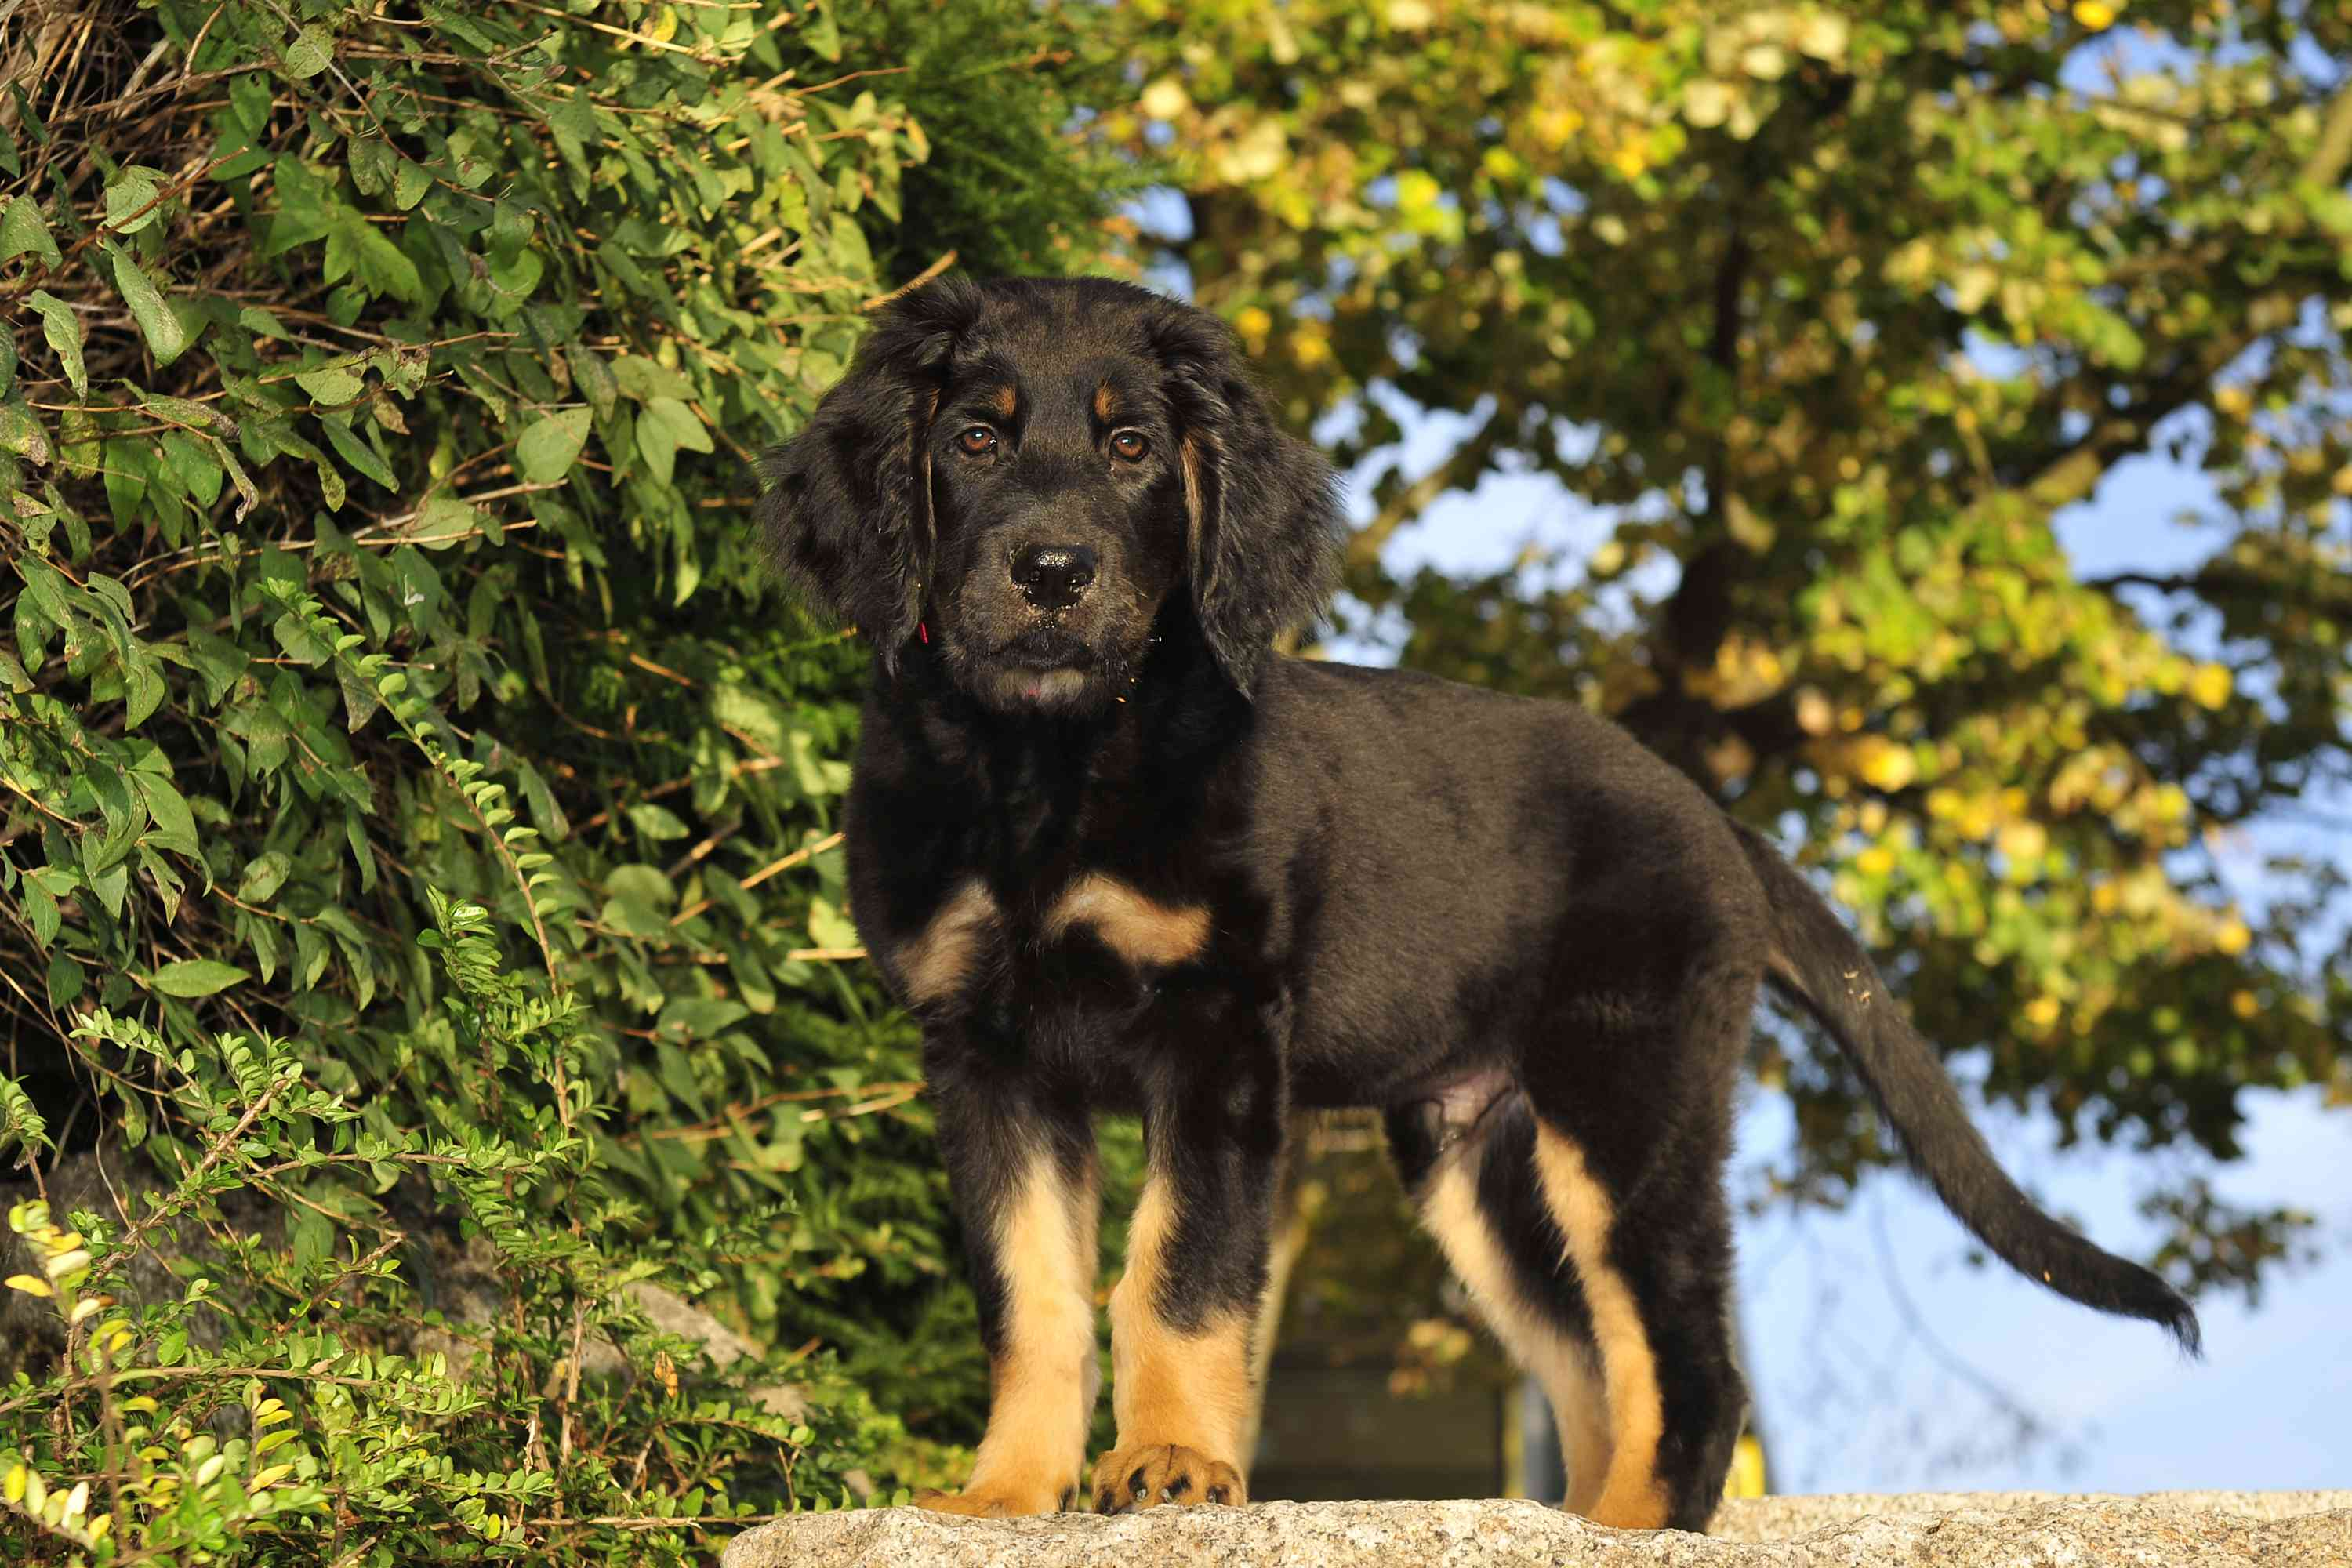 Hovawart puppy with black and tan coat